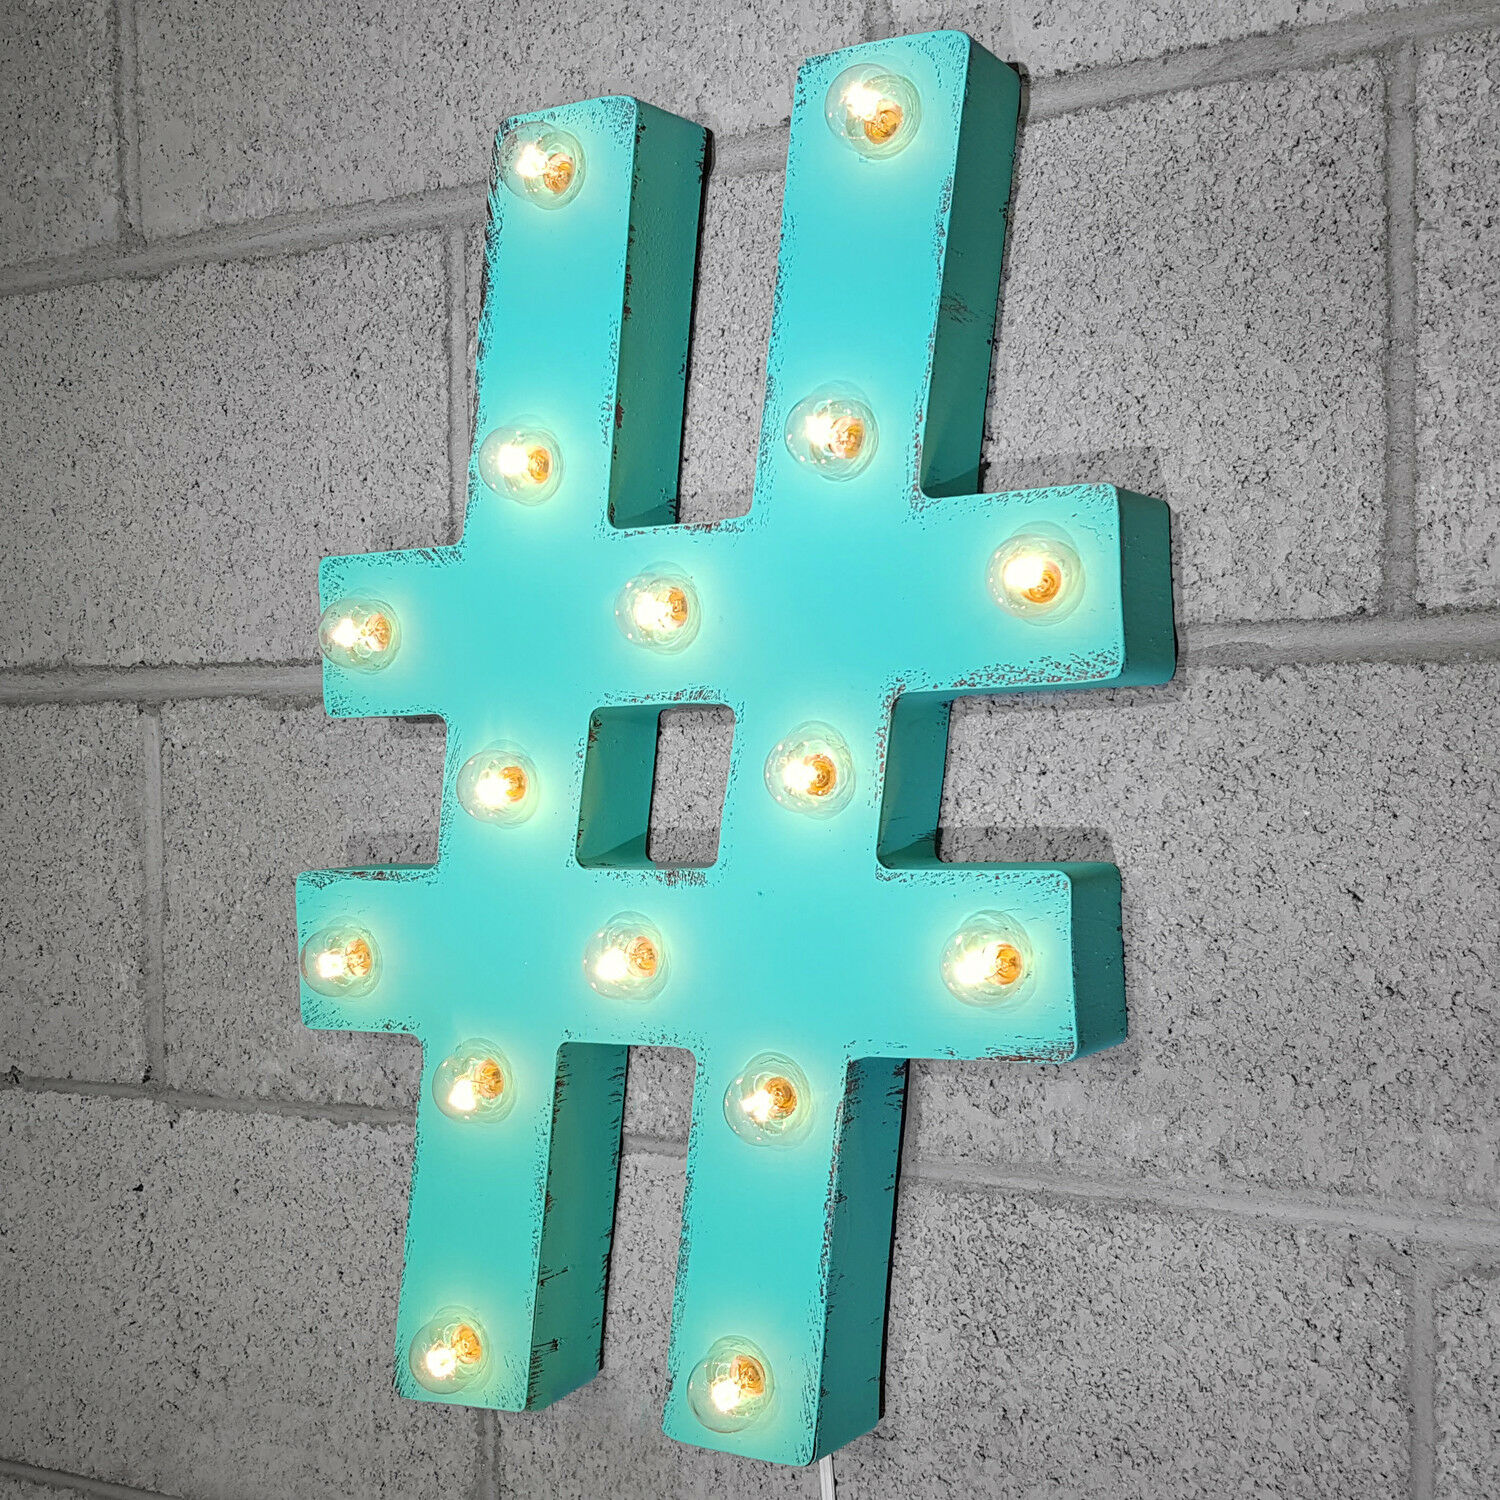 21  HASH TAG   Pound Sign Hashtag Symbol Vintage Rustic Metal Marquee Light Up